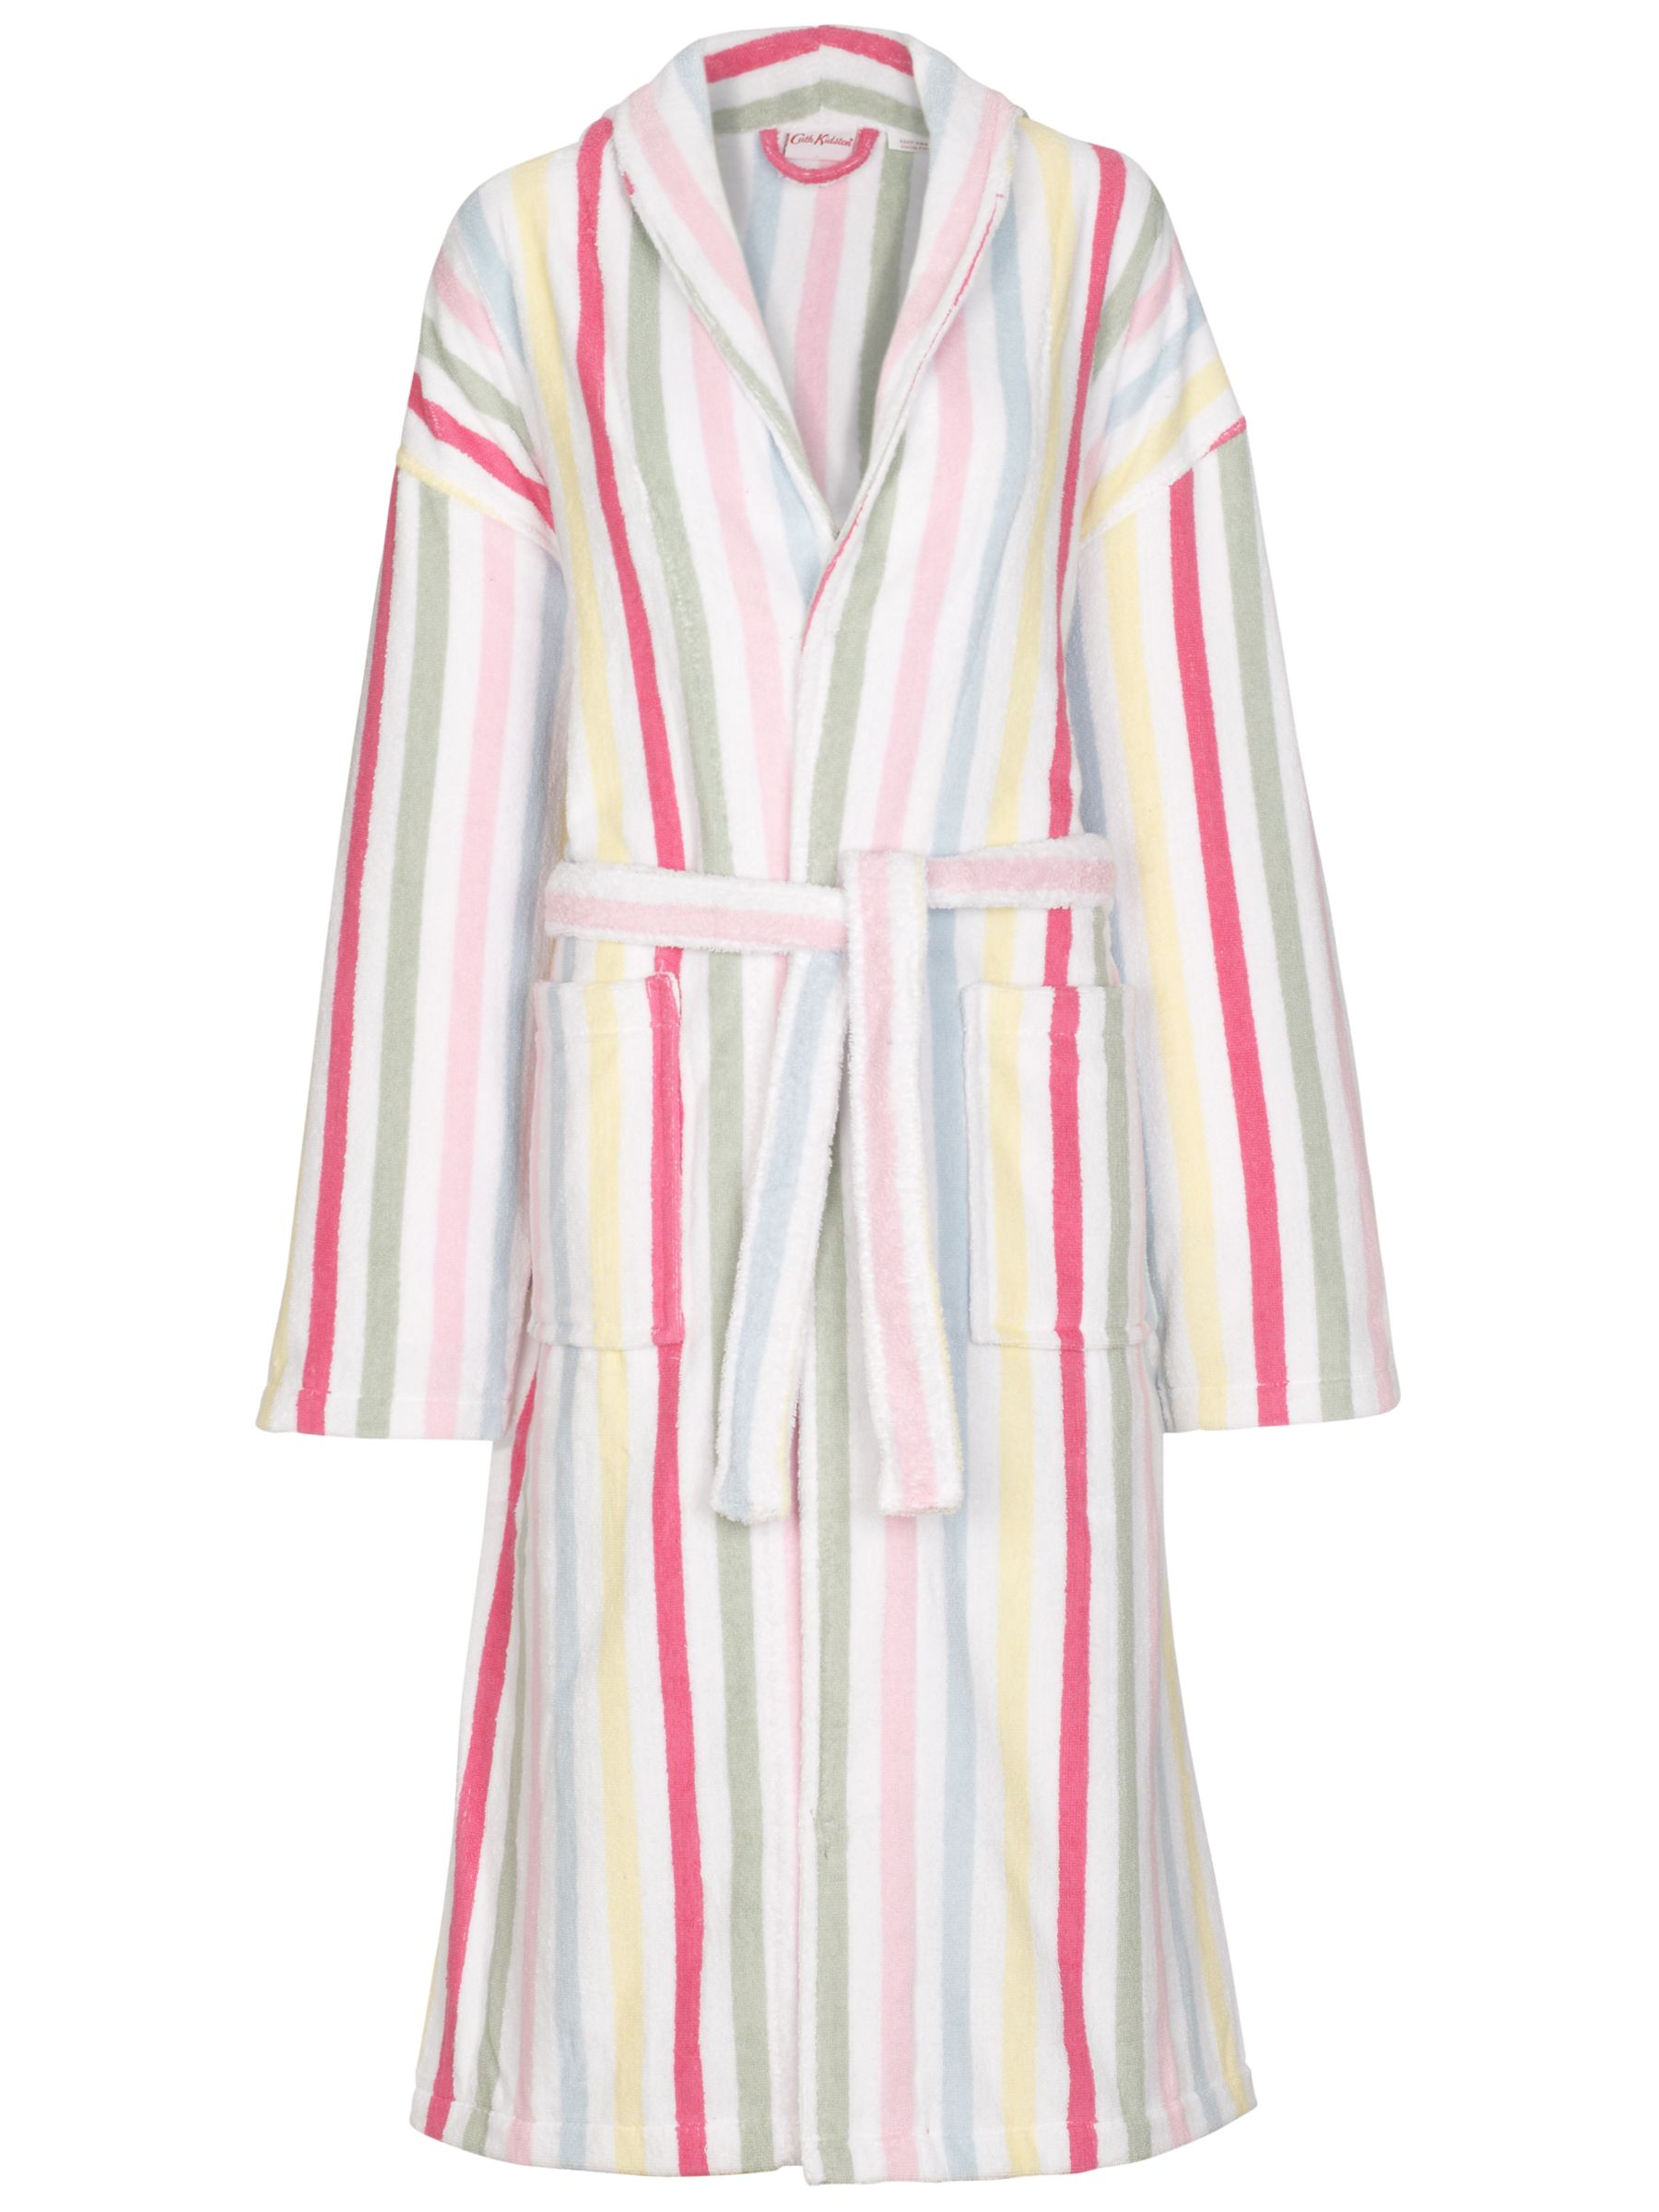 Cath Kidston Sherbert Stripe Bath Robe, Multi, One Size